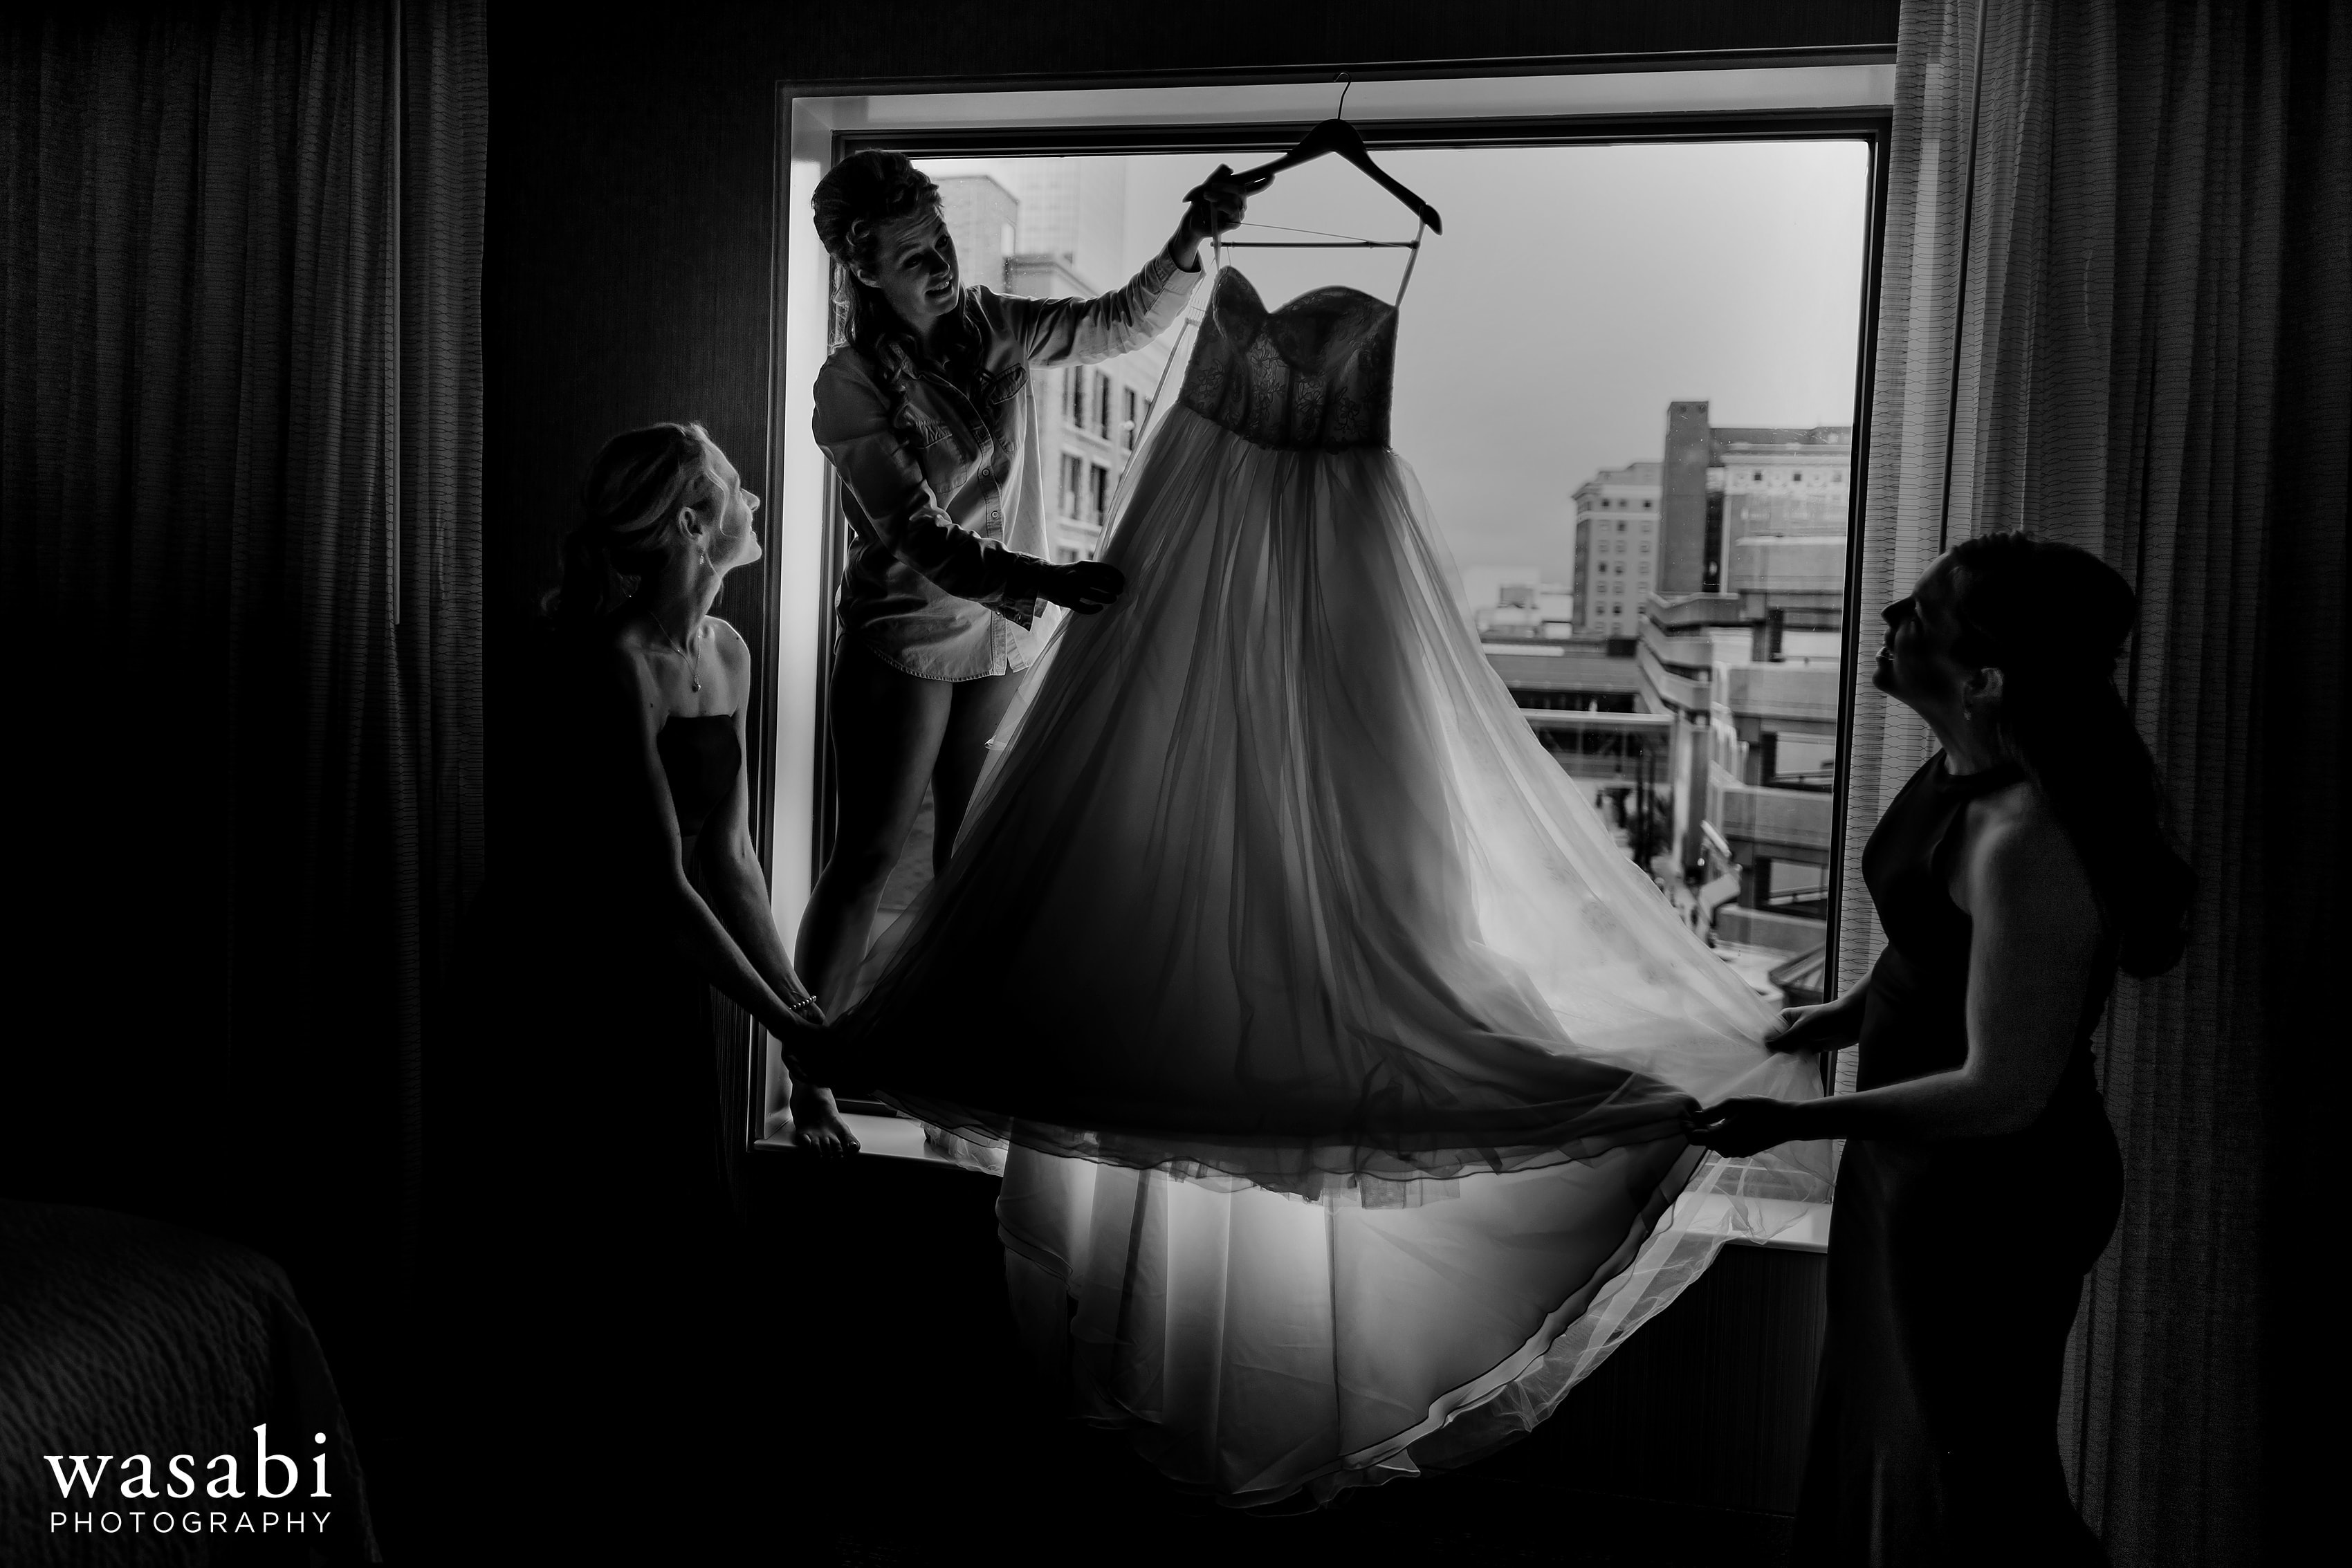 Bride and bridesmaids pull dress down from the window at Courtyard Marriott Downtown Grand Rapids before her wedding